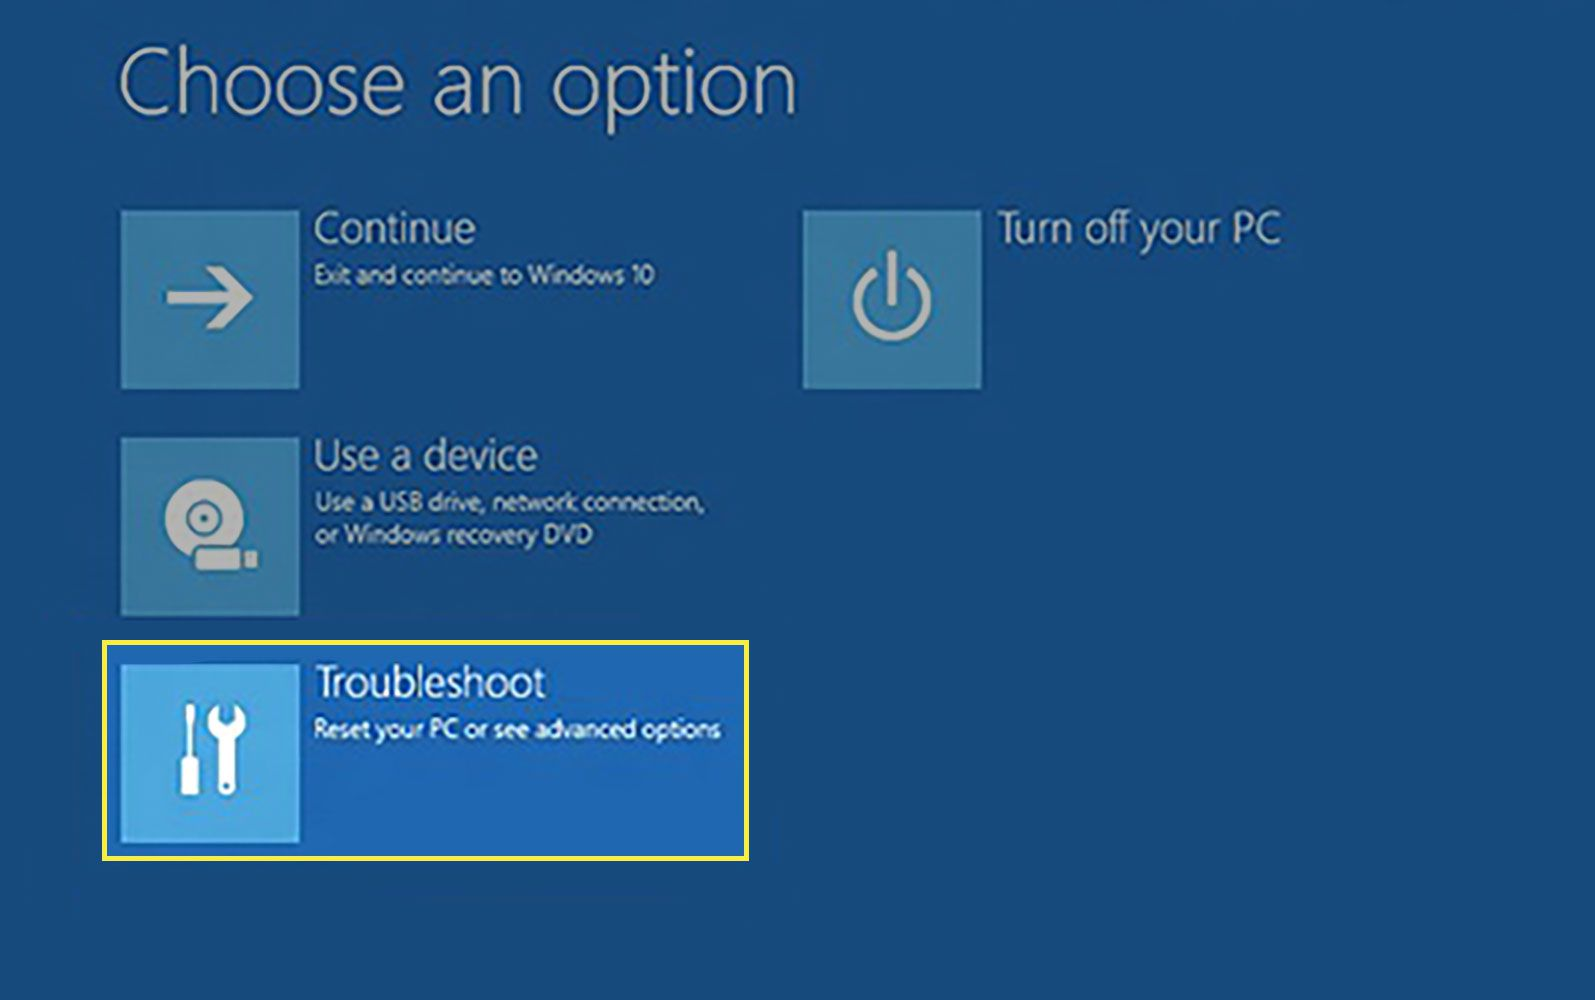 Troubleshoot in Windows 10 Recovery Environment